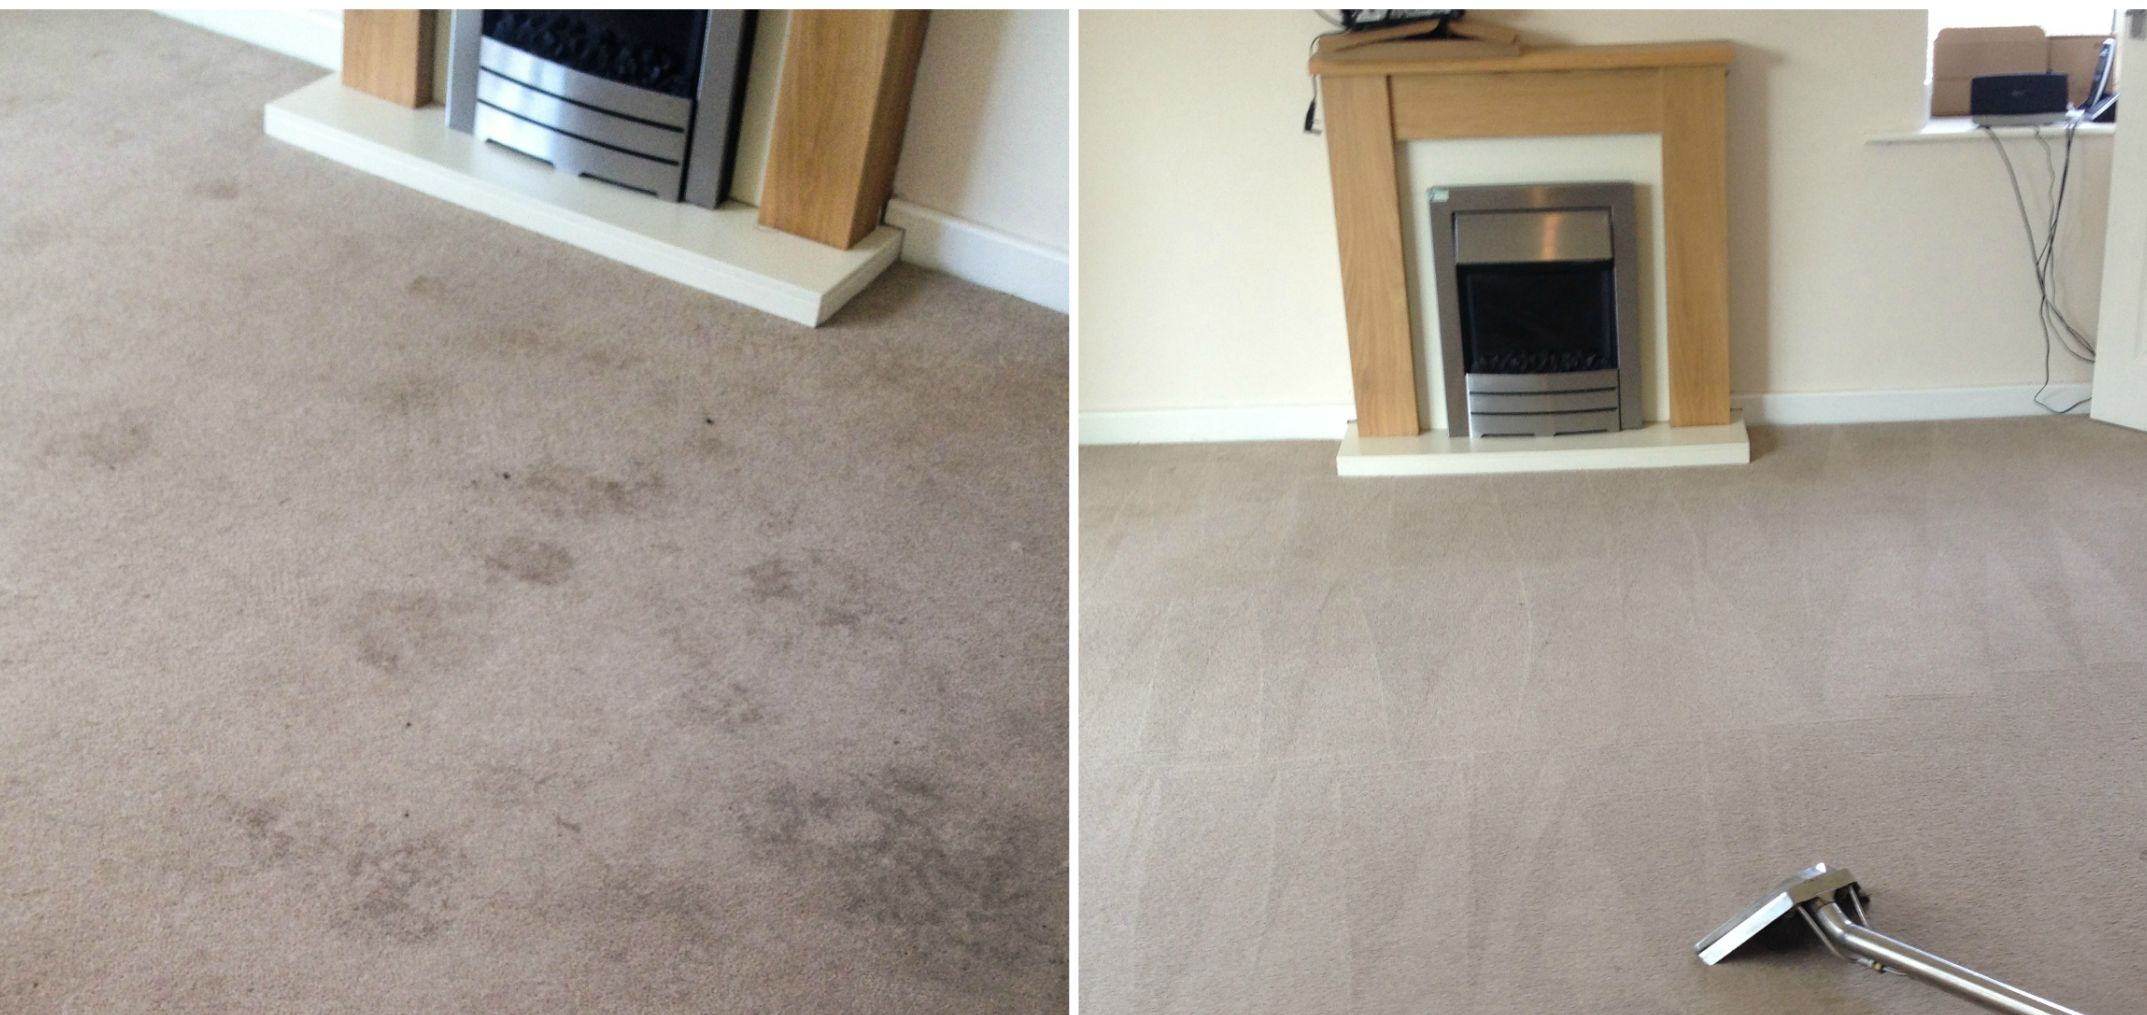 Barnsley Carpet And Upholstery Cleaning Barnsley Carpet